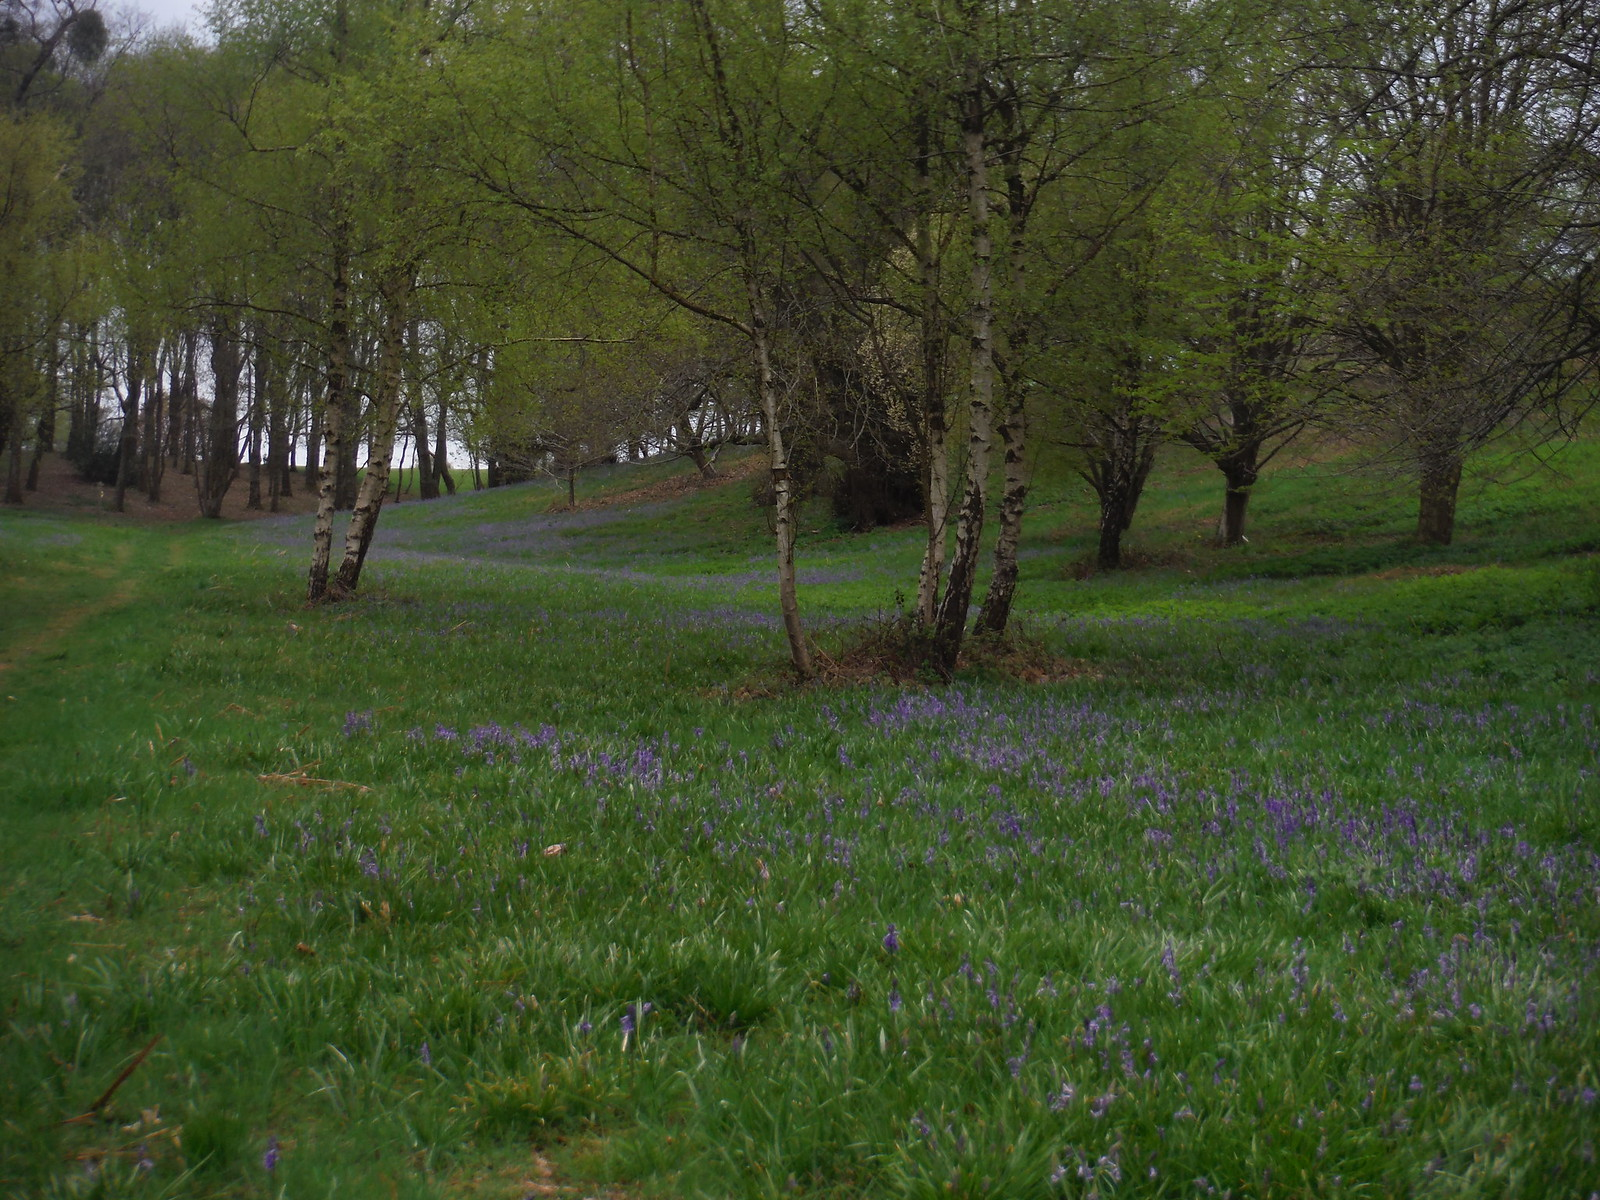 shallow valley (carpeted in bluebells SWC Walk 48 Haslemere to Midhurst (via Lurgashall or Lickfold)